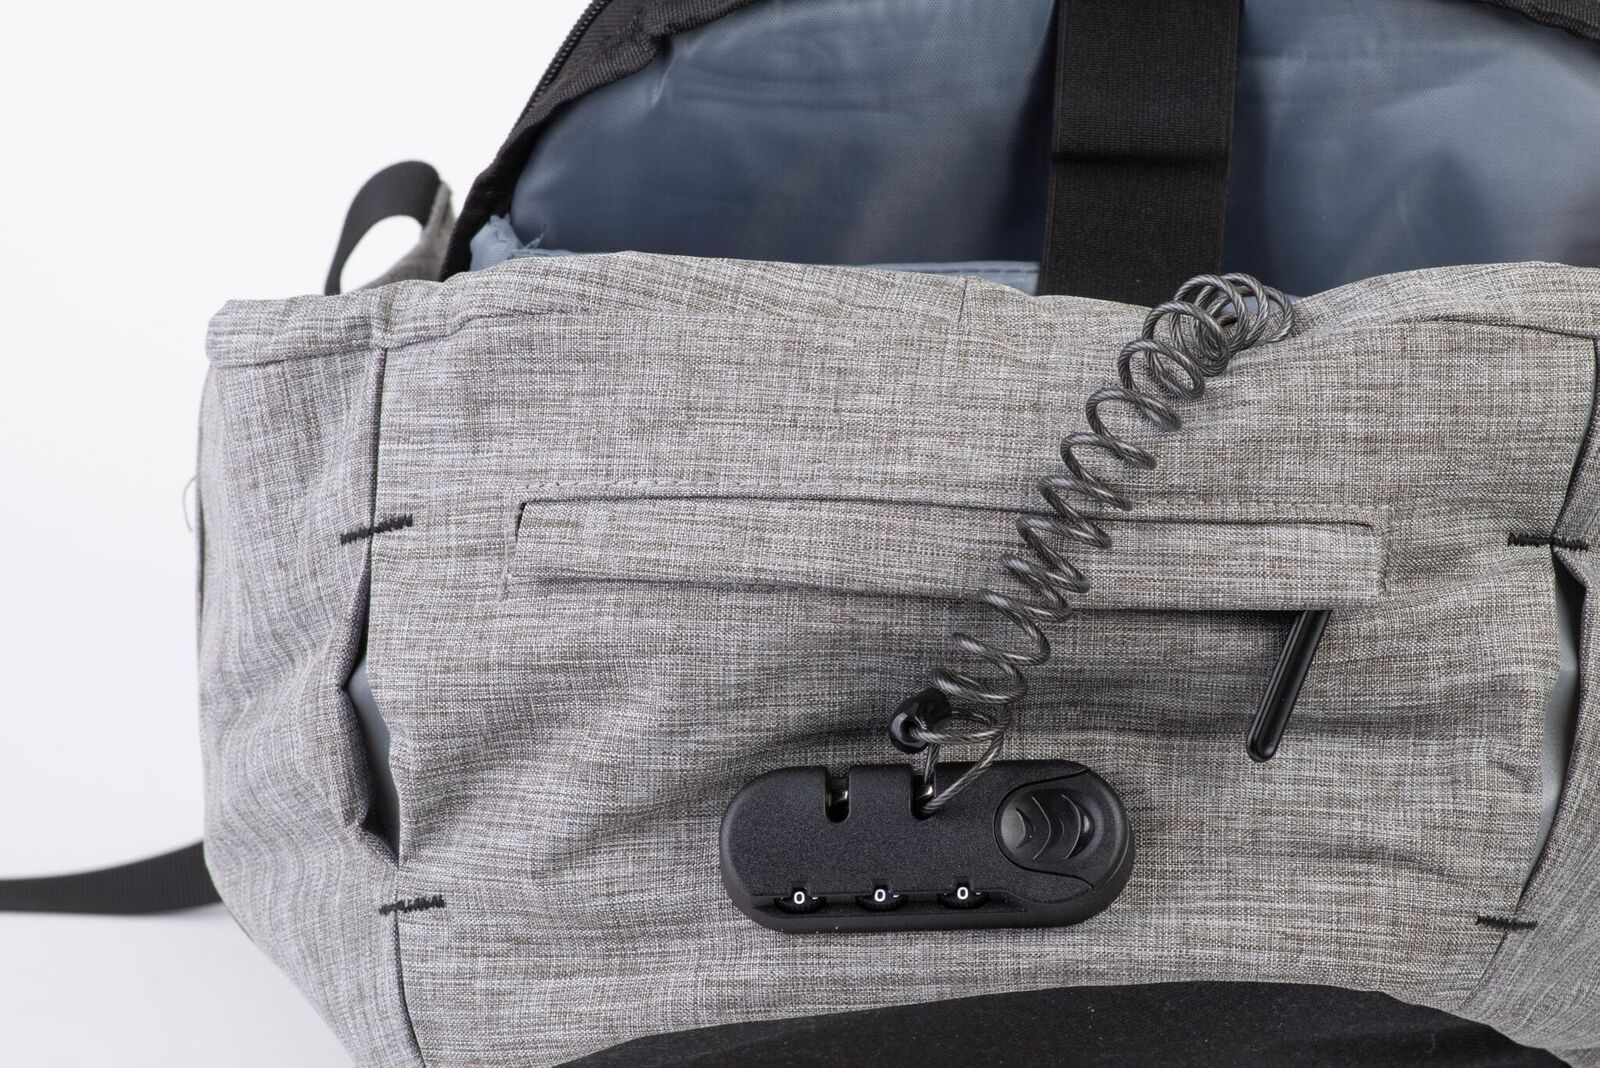 close view presentation photo of snug anti theft backpack